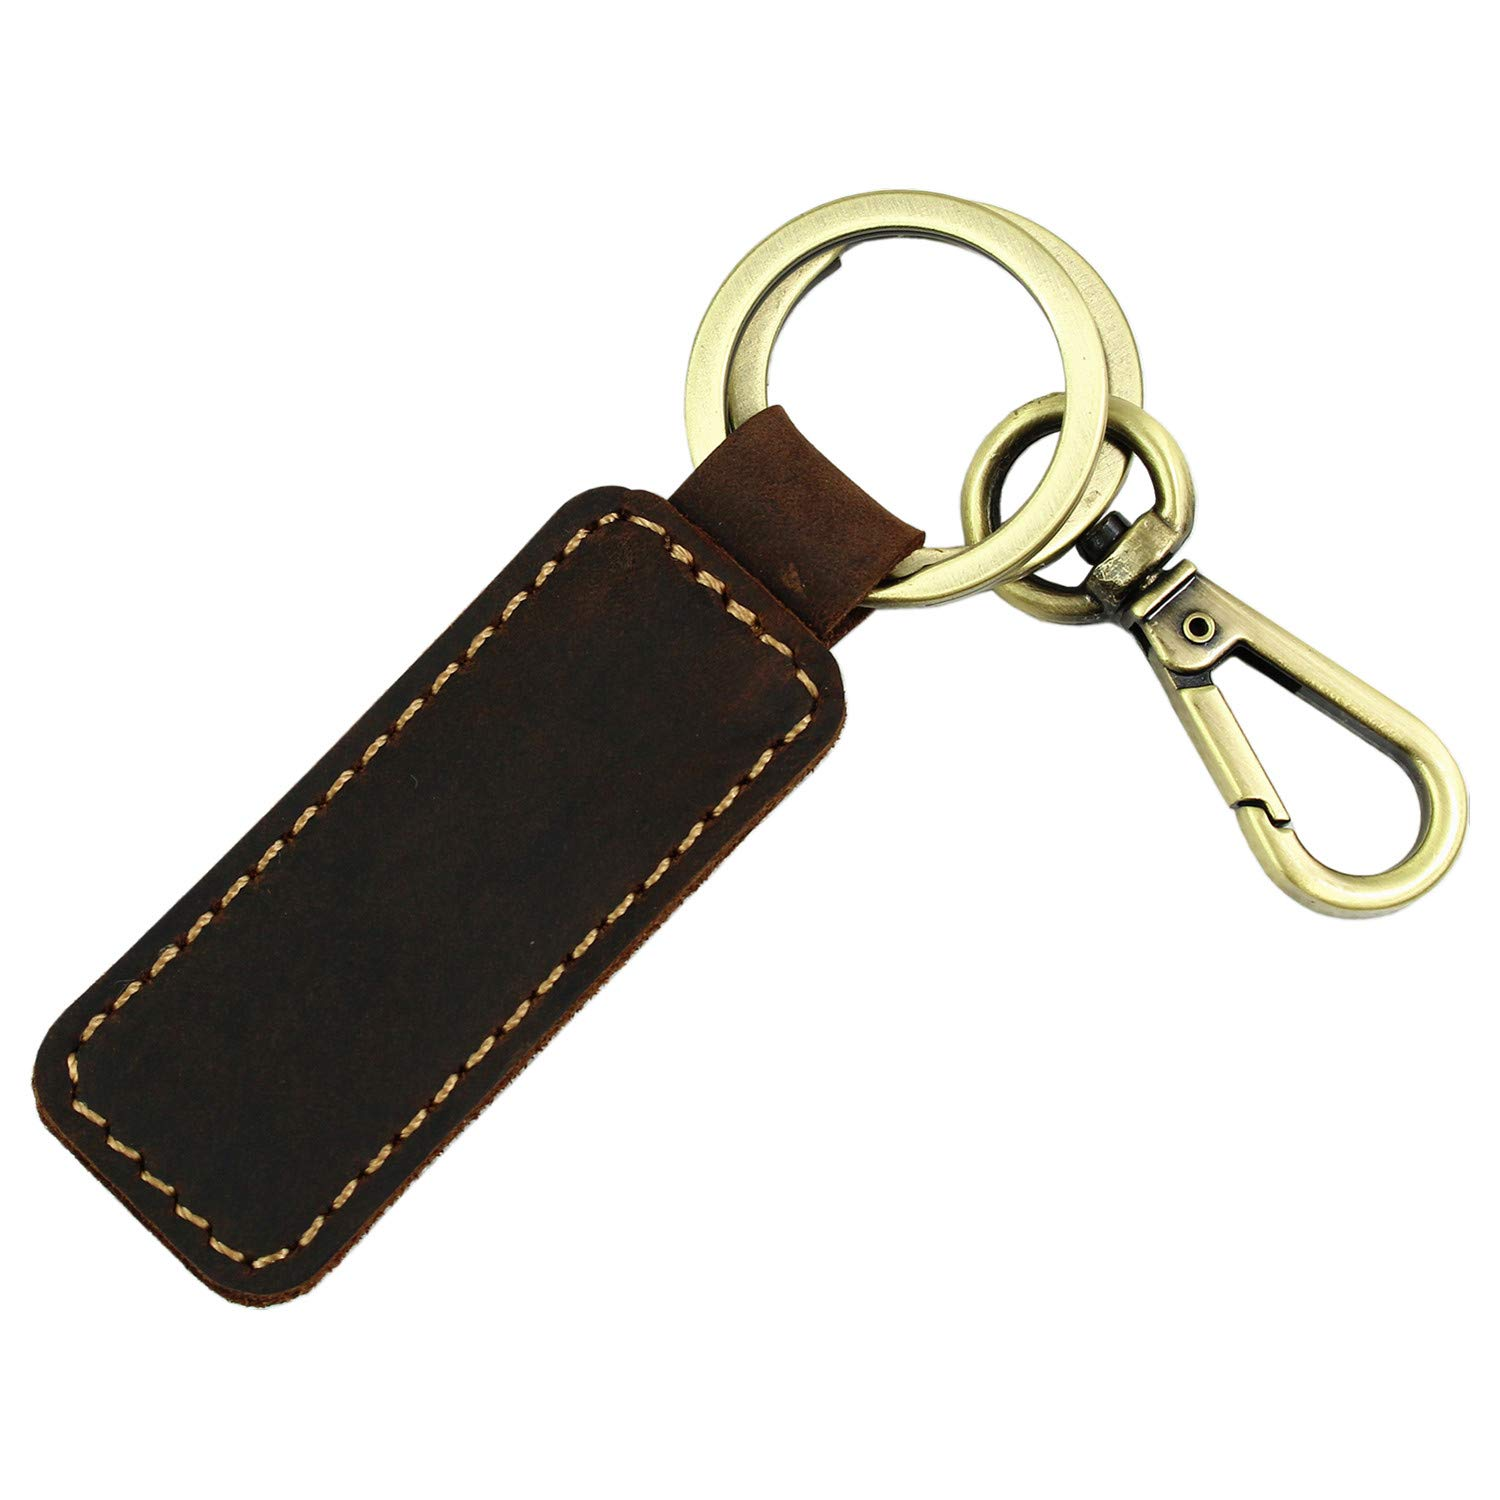 LXFF Genuine Leather Key Chain, Key Fob with Hanging Buckle (Coffee 2)